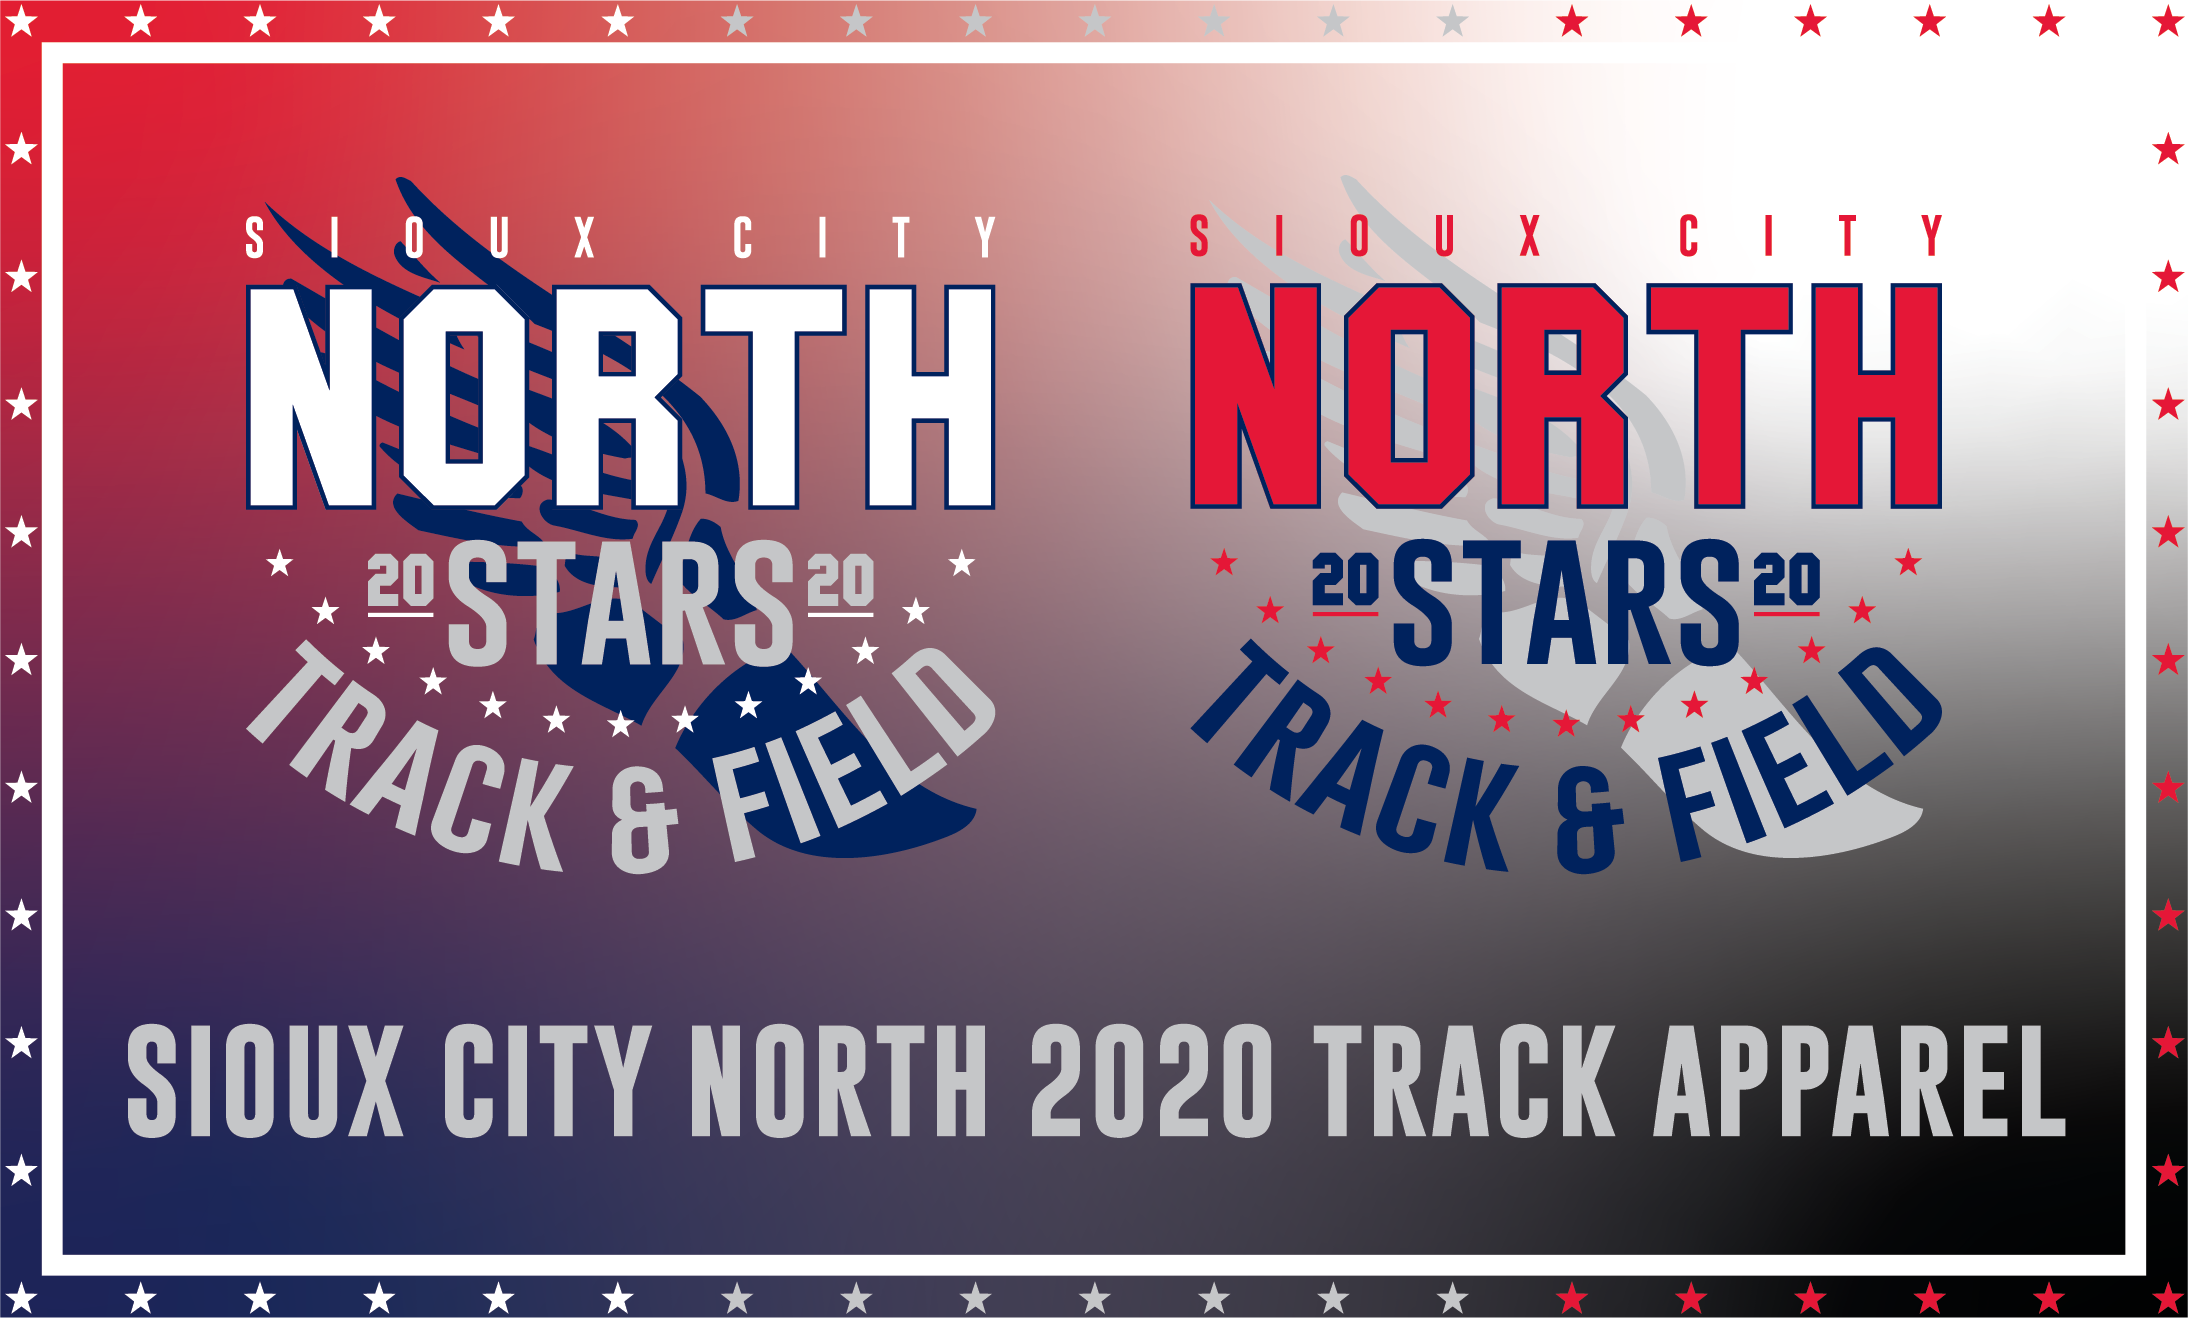 Sioux City North Track & Field